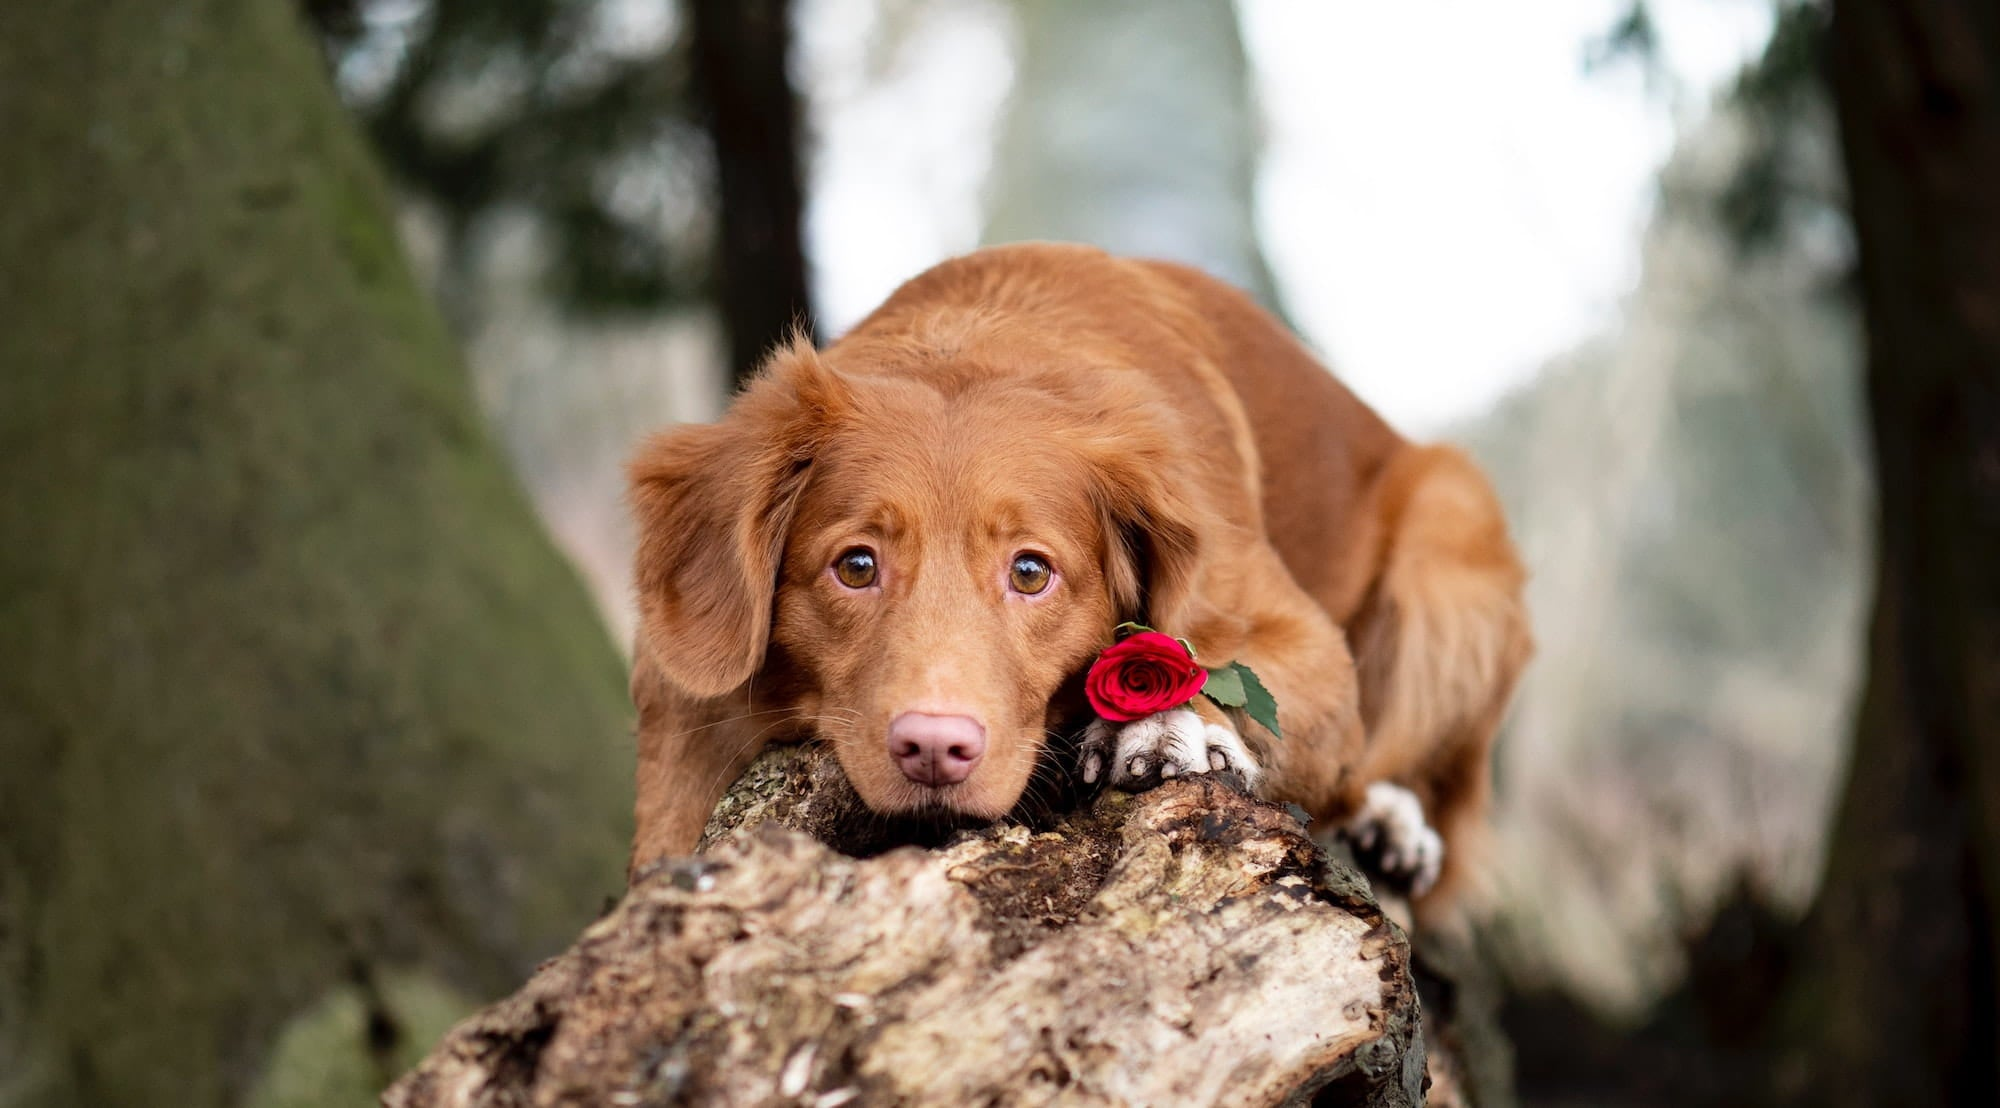 Dog sitting in the woods with a red rose